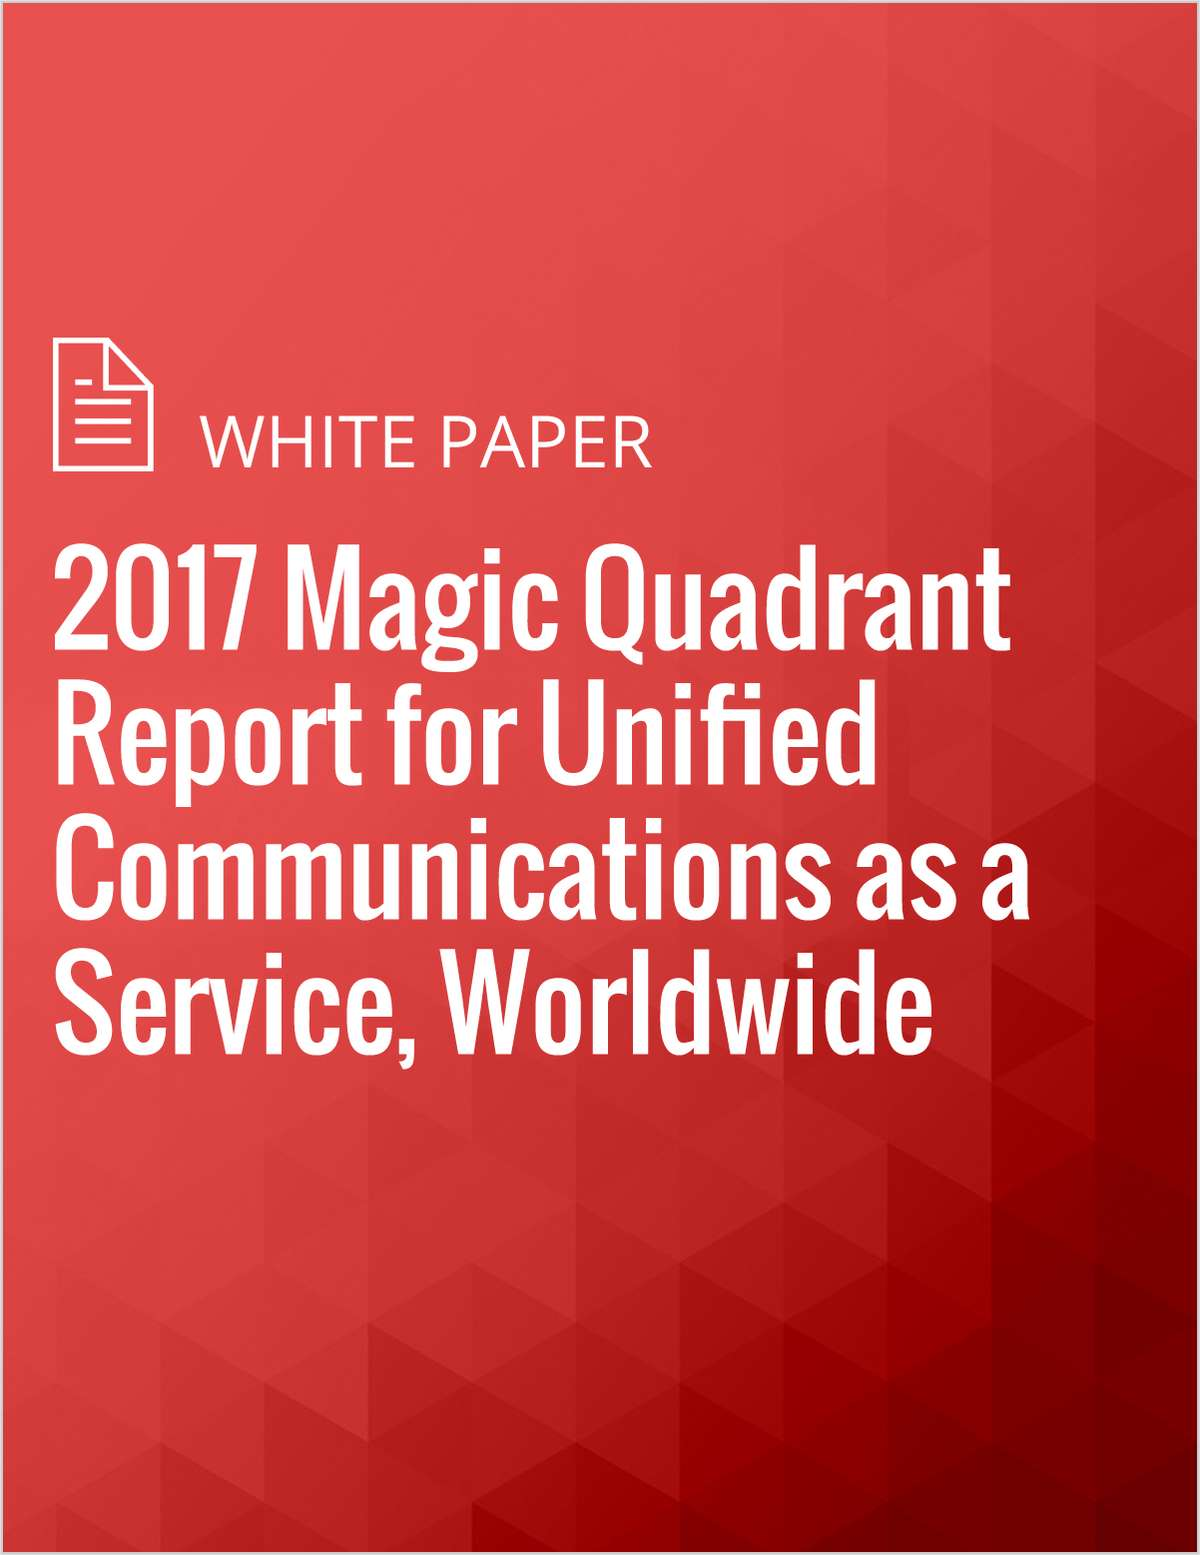 2017 Magic Quadrant Report for Unified Communications as a Service, Worldwide